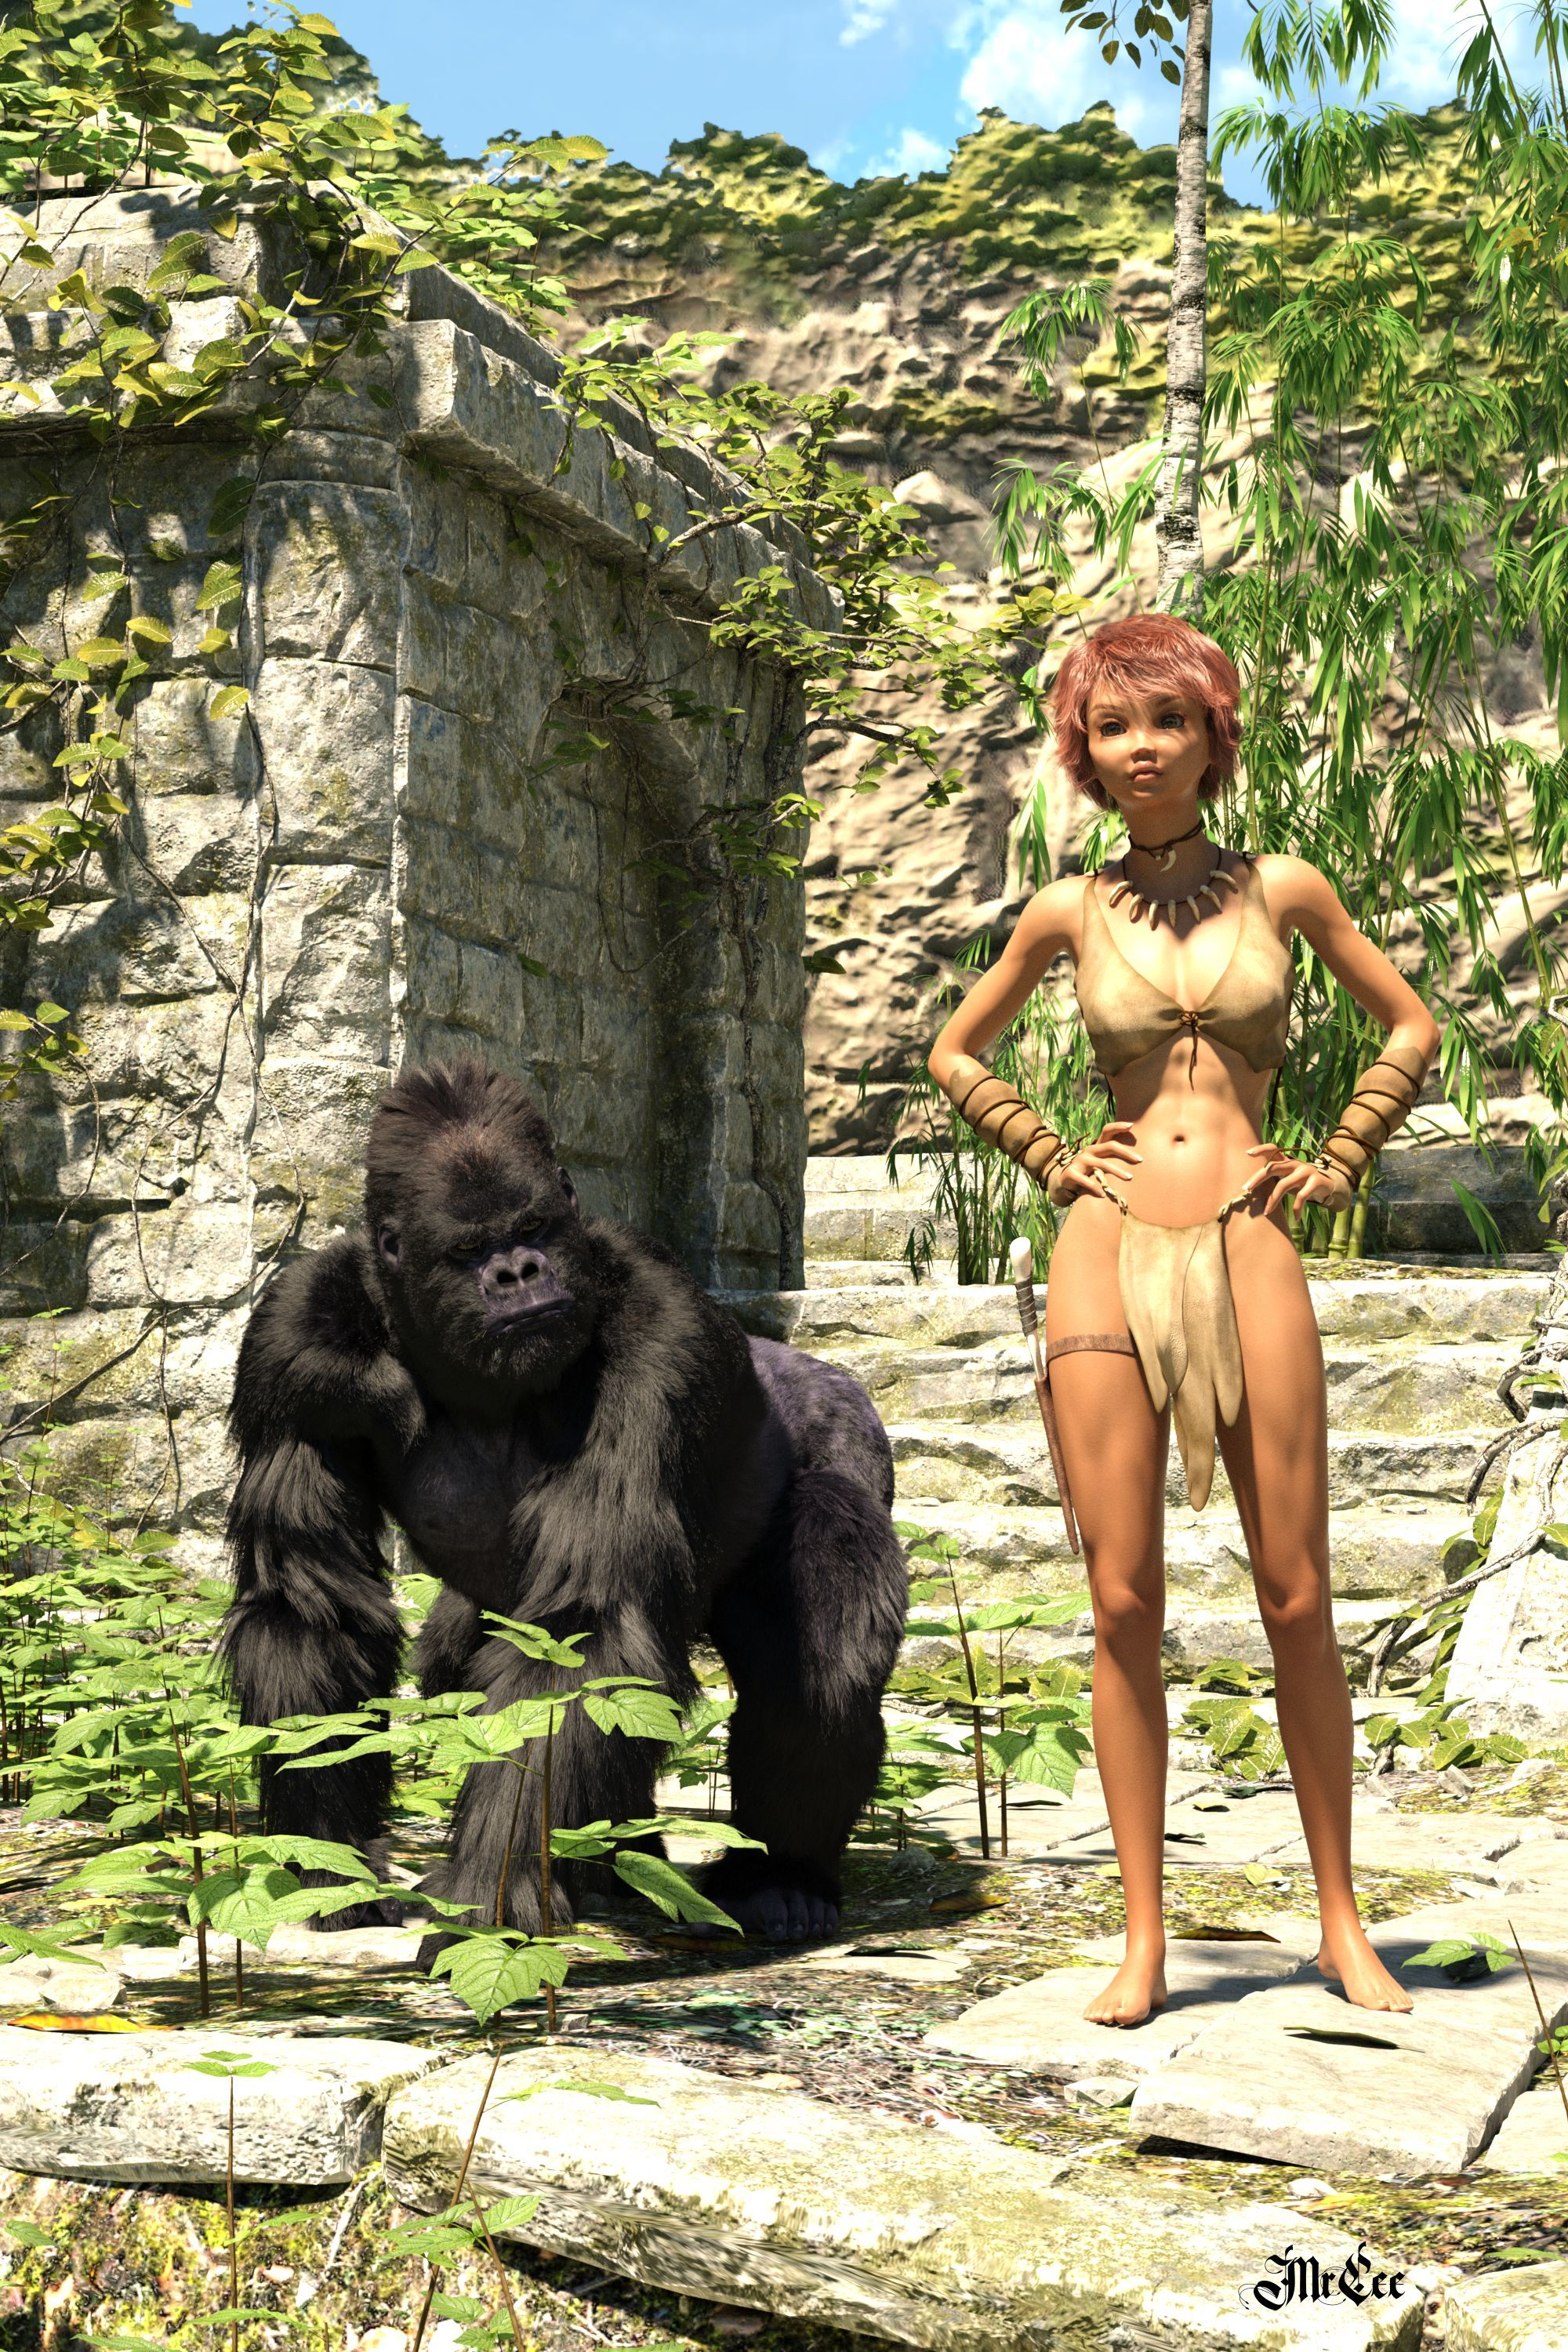 Zoë of the Jungle and Friend